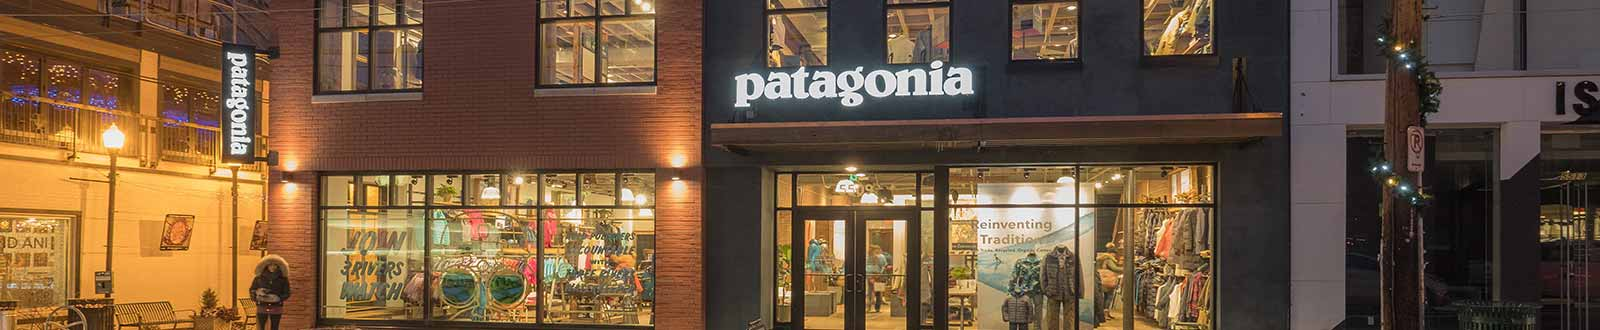 bab3cb2f9 Patagonia Pittsburgh Supported Grantees - Patagonia Action Works